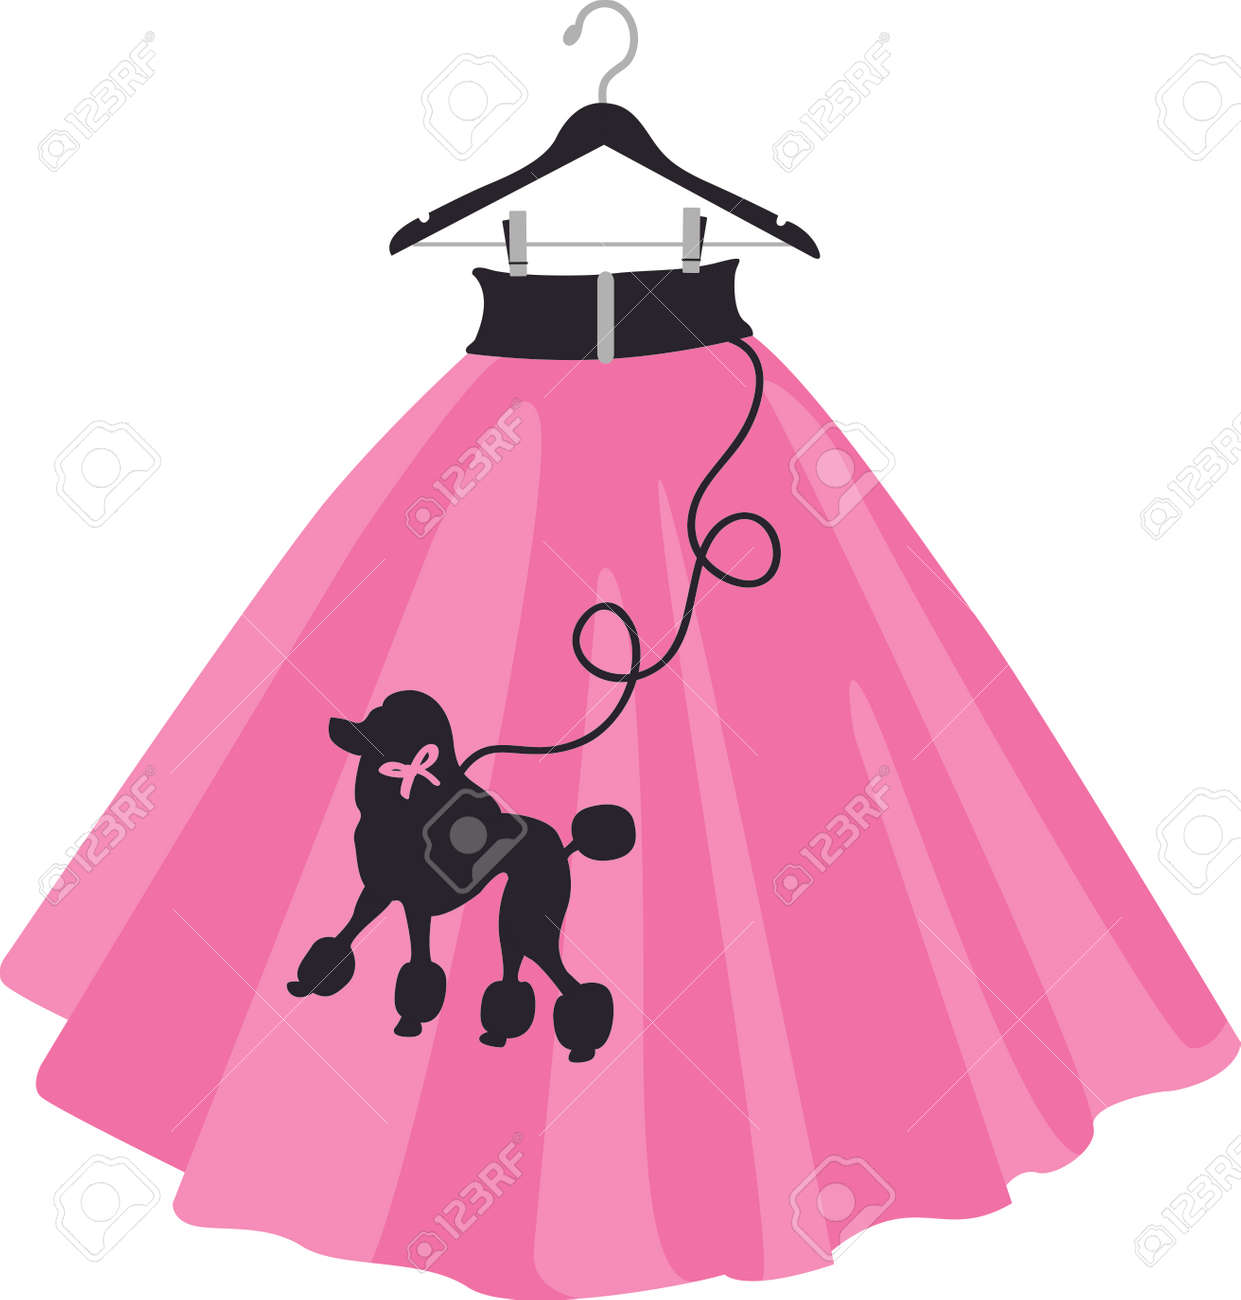 girls love throwback 50s and wearing poodle skirts royalty free rh 123rf com 50s Style Clip Art 50 S Sock Hop Clip Art